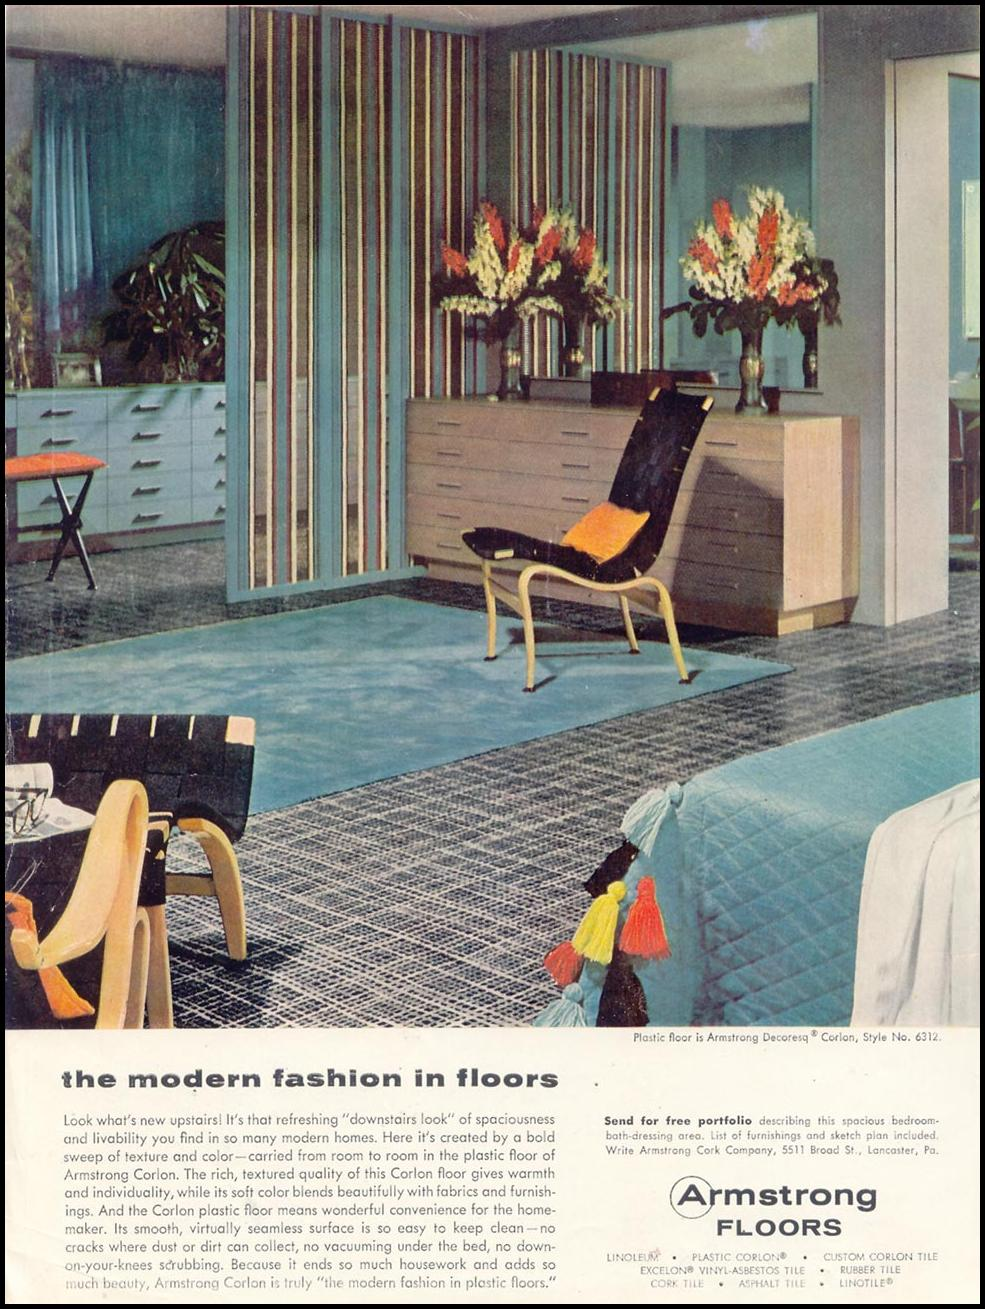 ARMSTRONG FLOORS WOMAN'S DAY 11/01/1955 INSIDE FRONT